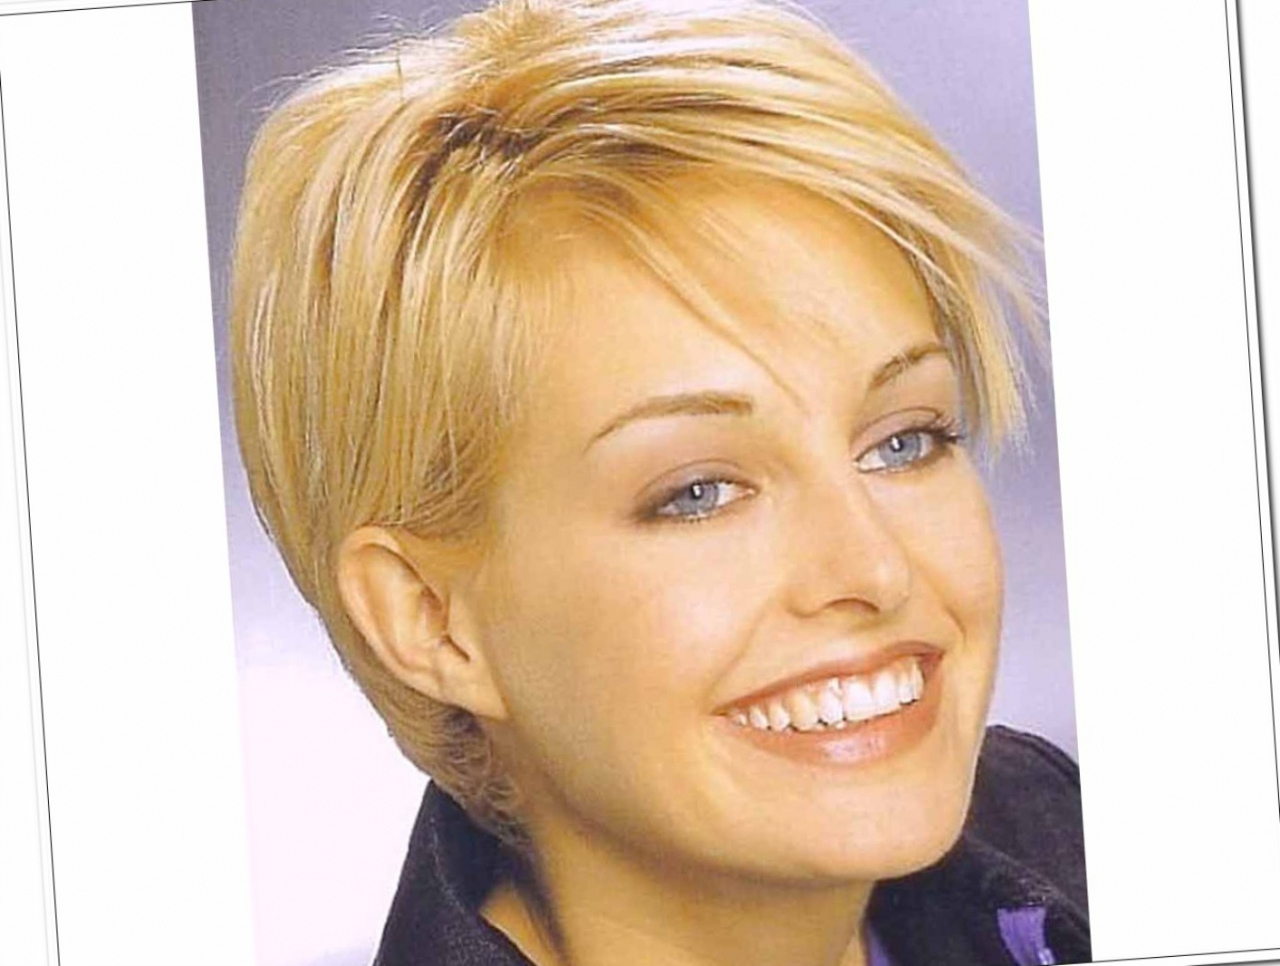 77 Shoulder Length Hairstyles For Women Over 50 Awesome Stunning Regarding Short Length Hairstyles For Women Over 50 (Gallery 21 of 25)